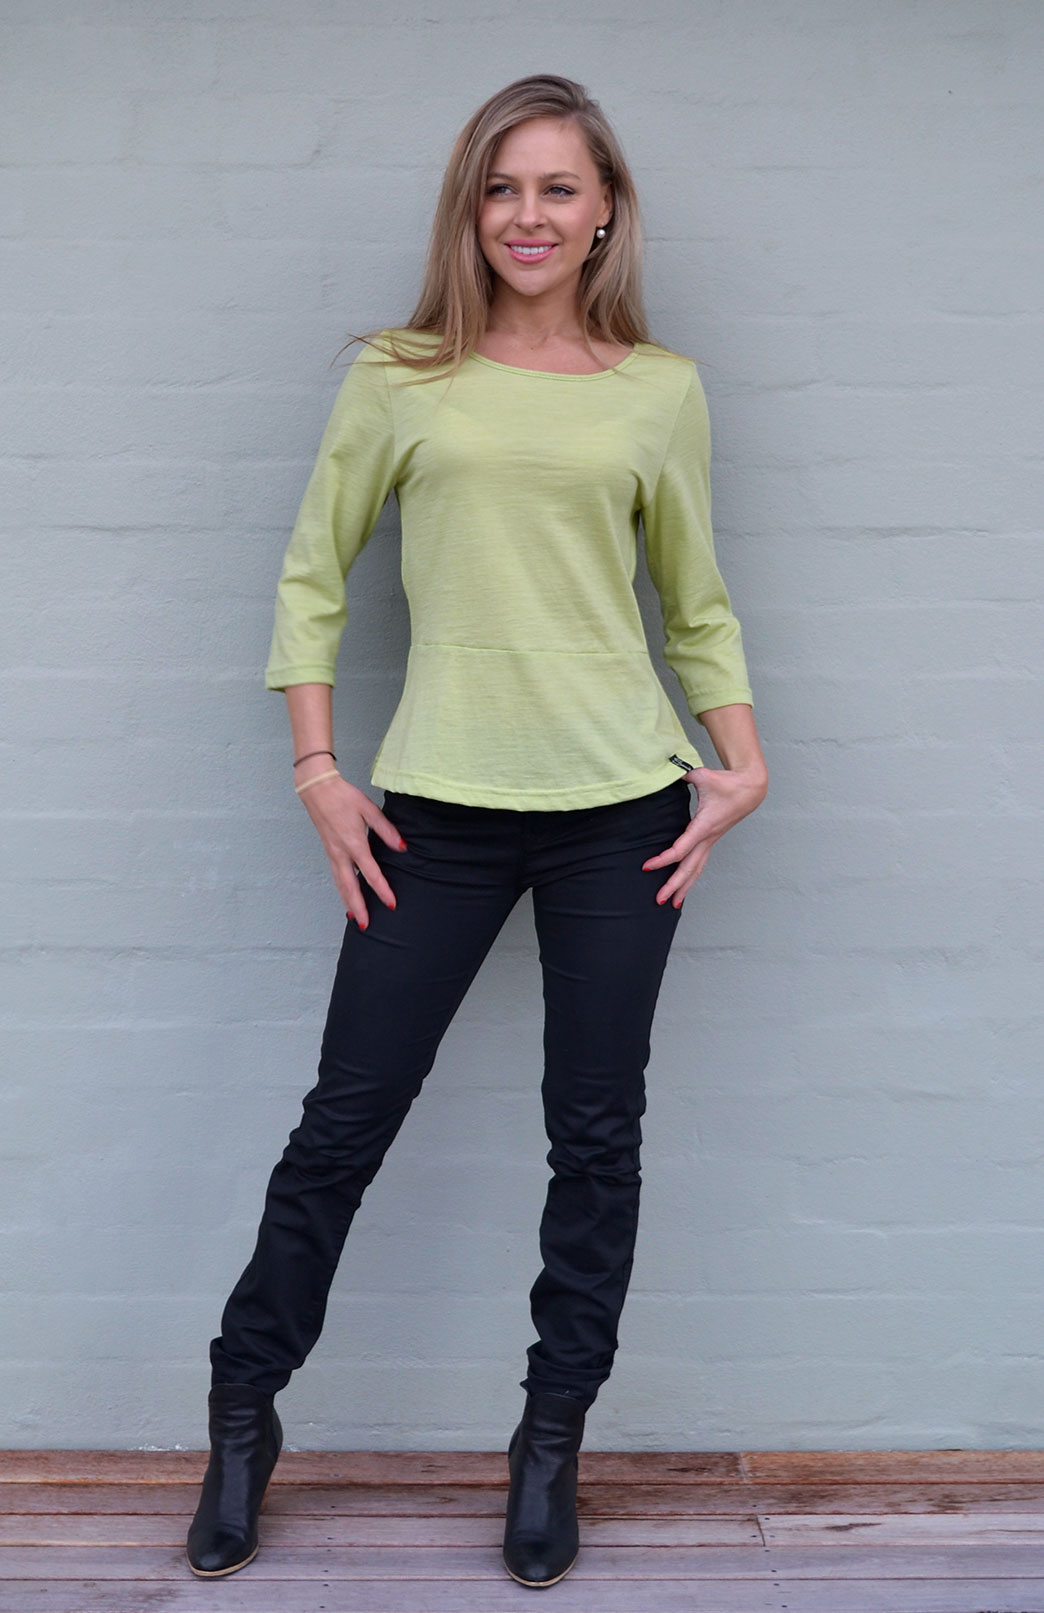 Peplum Top - 3/4 Sleeve - Women's Willow Green Wool Cotton Blend 3/4 Sleeve Spring Top - Smitten Merino Tasmania Australia